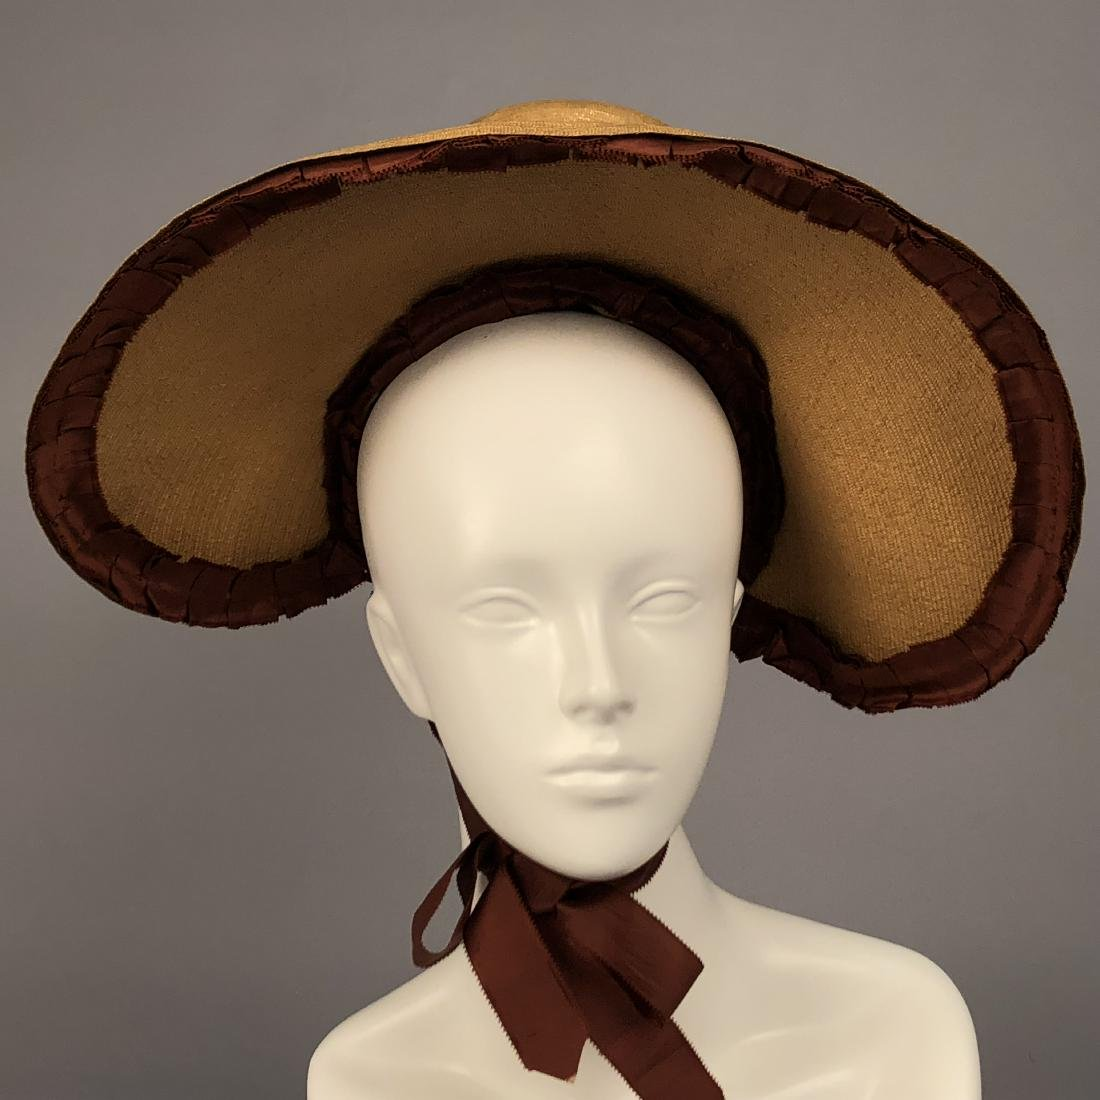 NATURAL LEGHORN STRAW BONNET, c. 1830 - 2